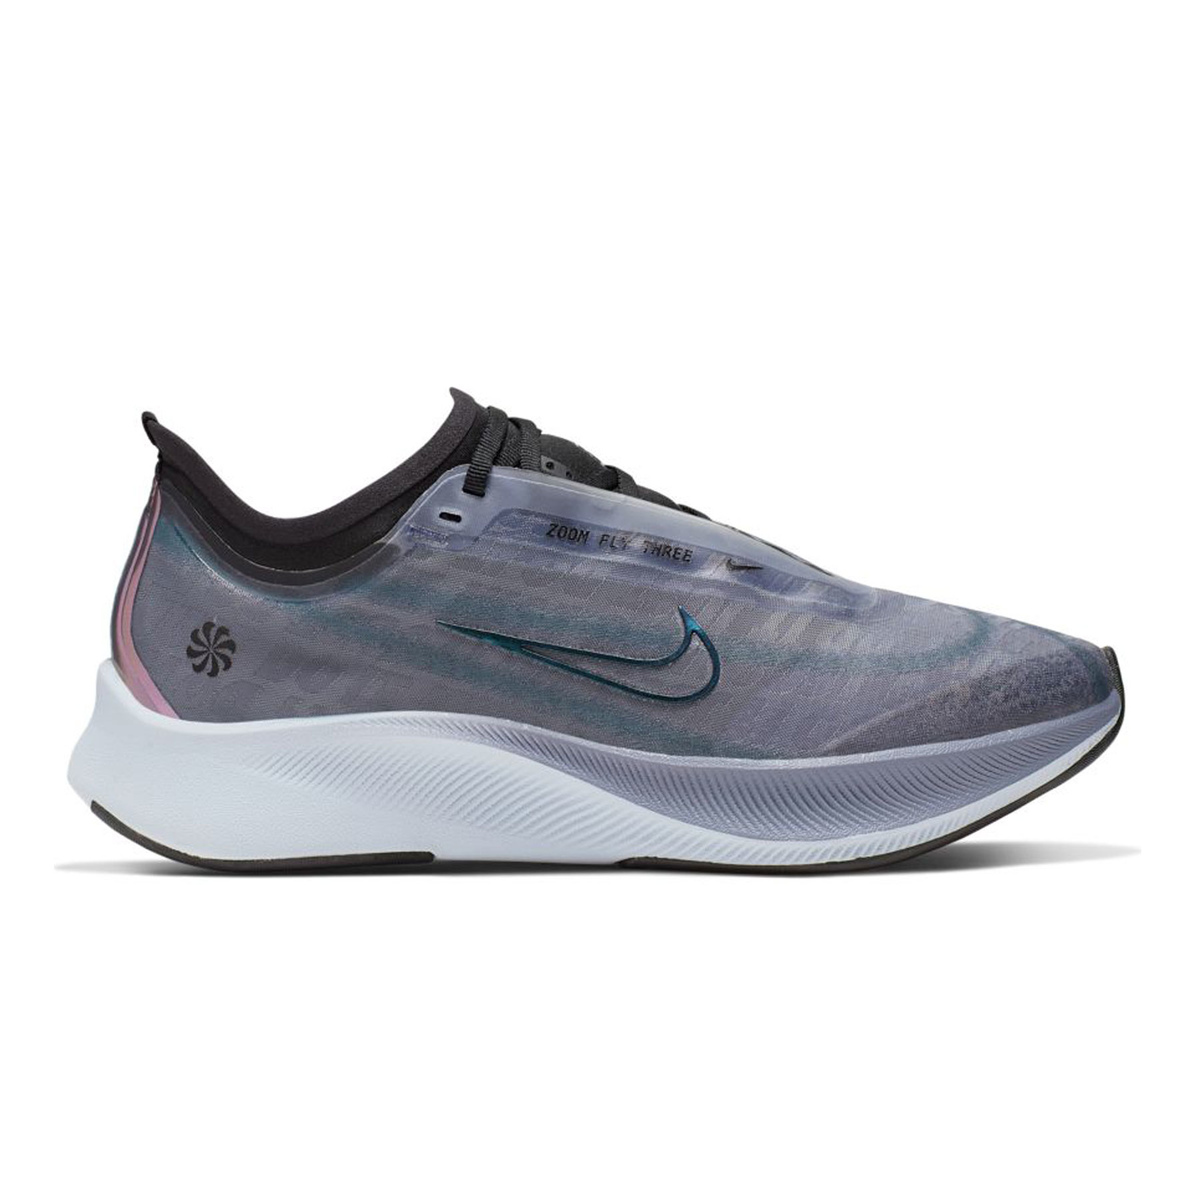 ZOOM FLY 3 DONNA